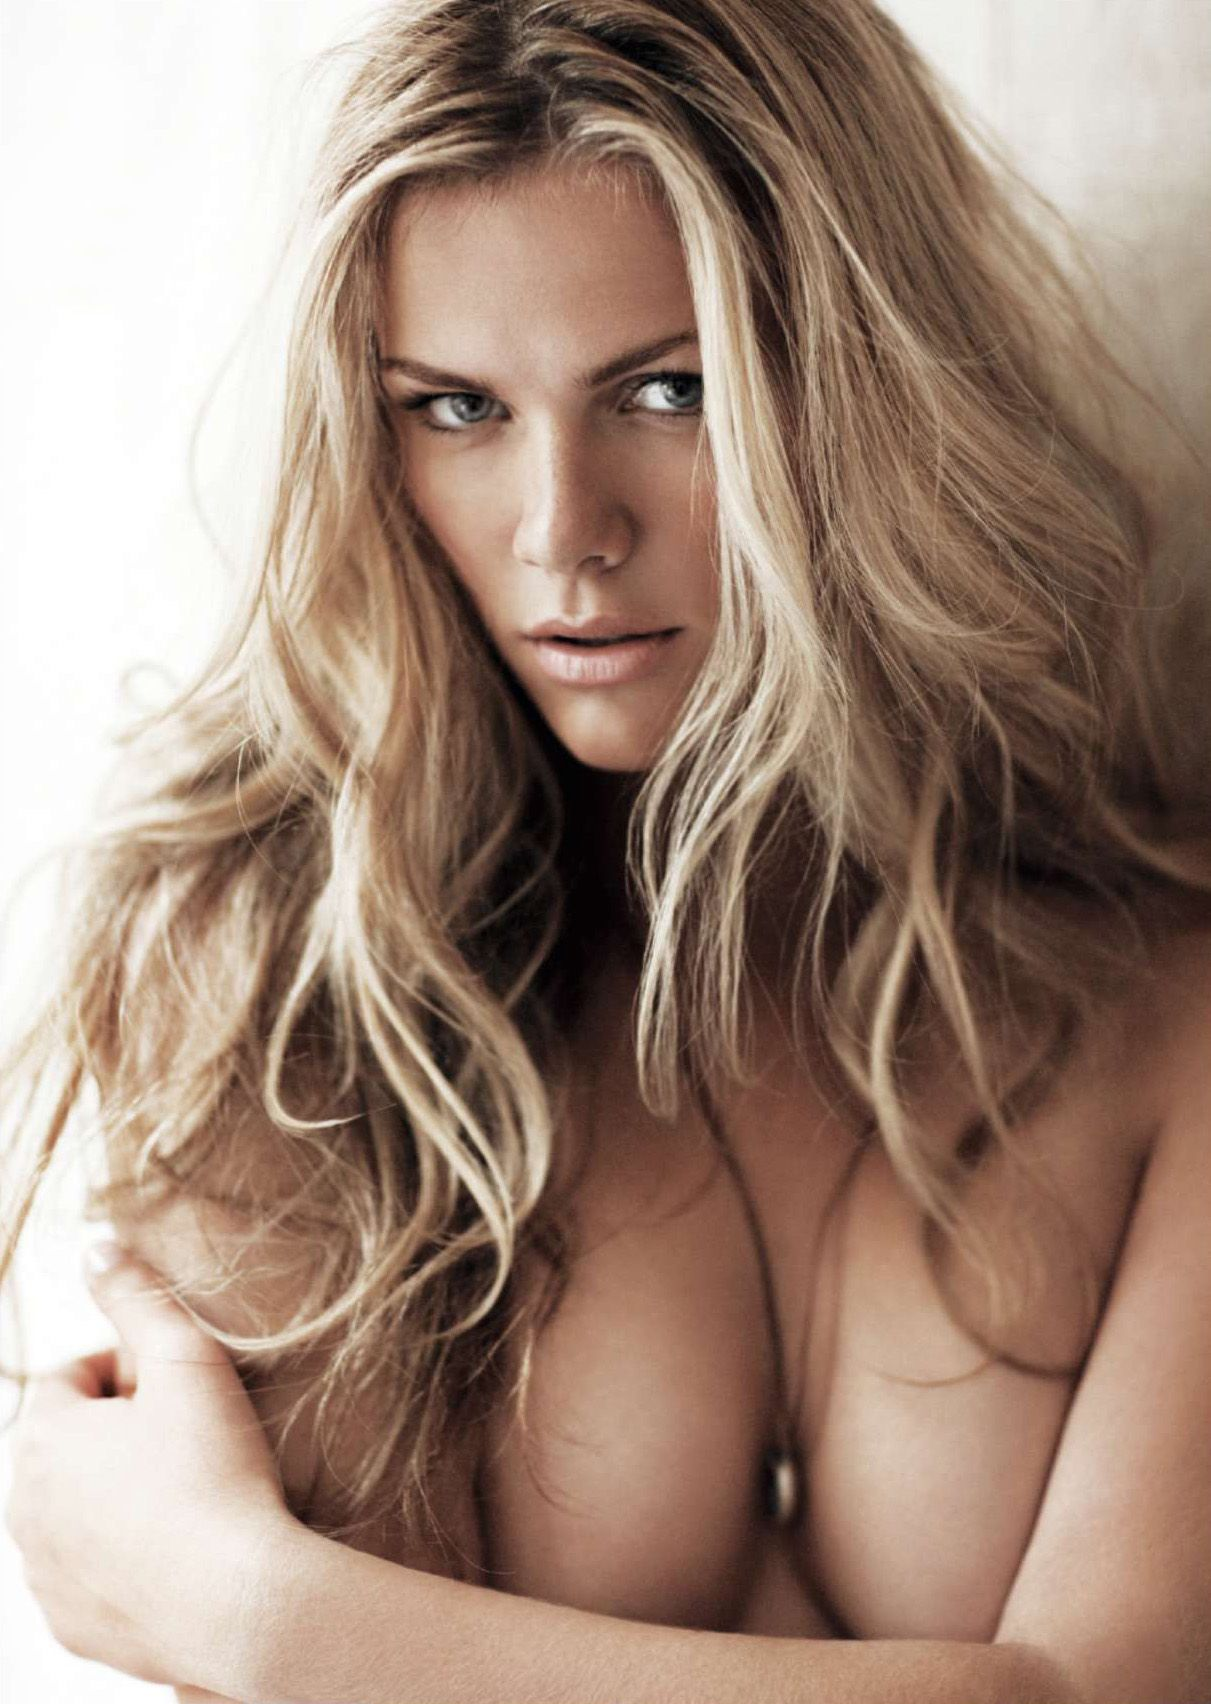 Maxim Hot 100 2010 - 2 Brooklyn Decker